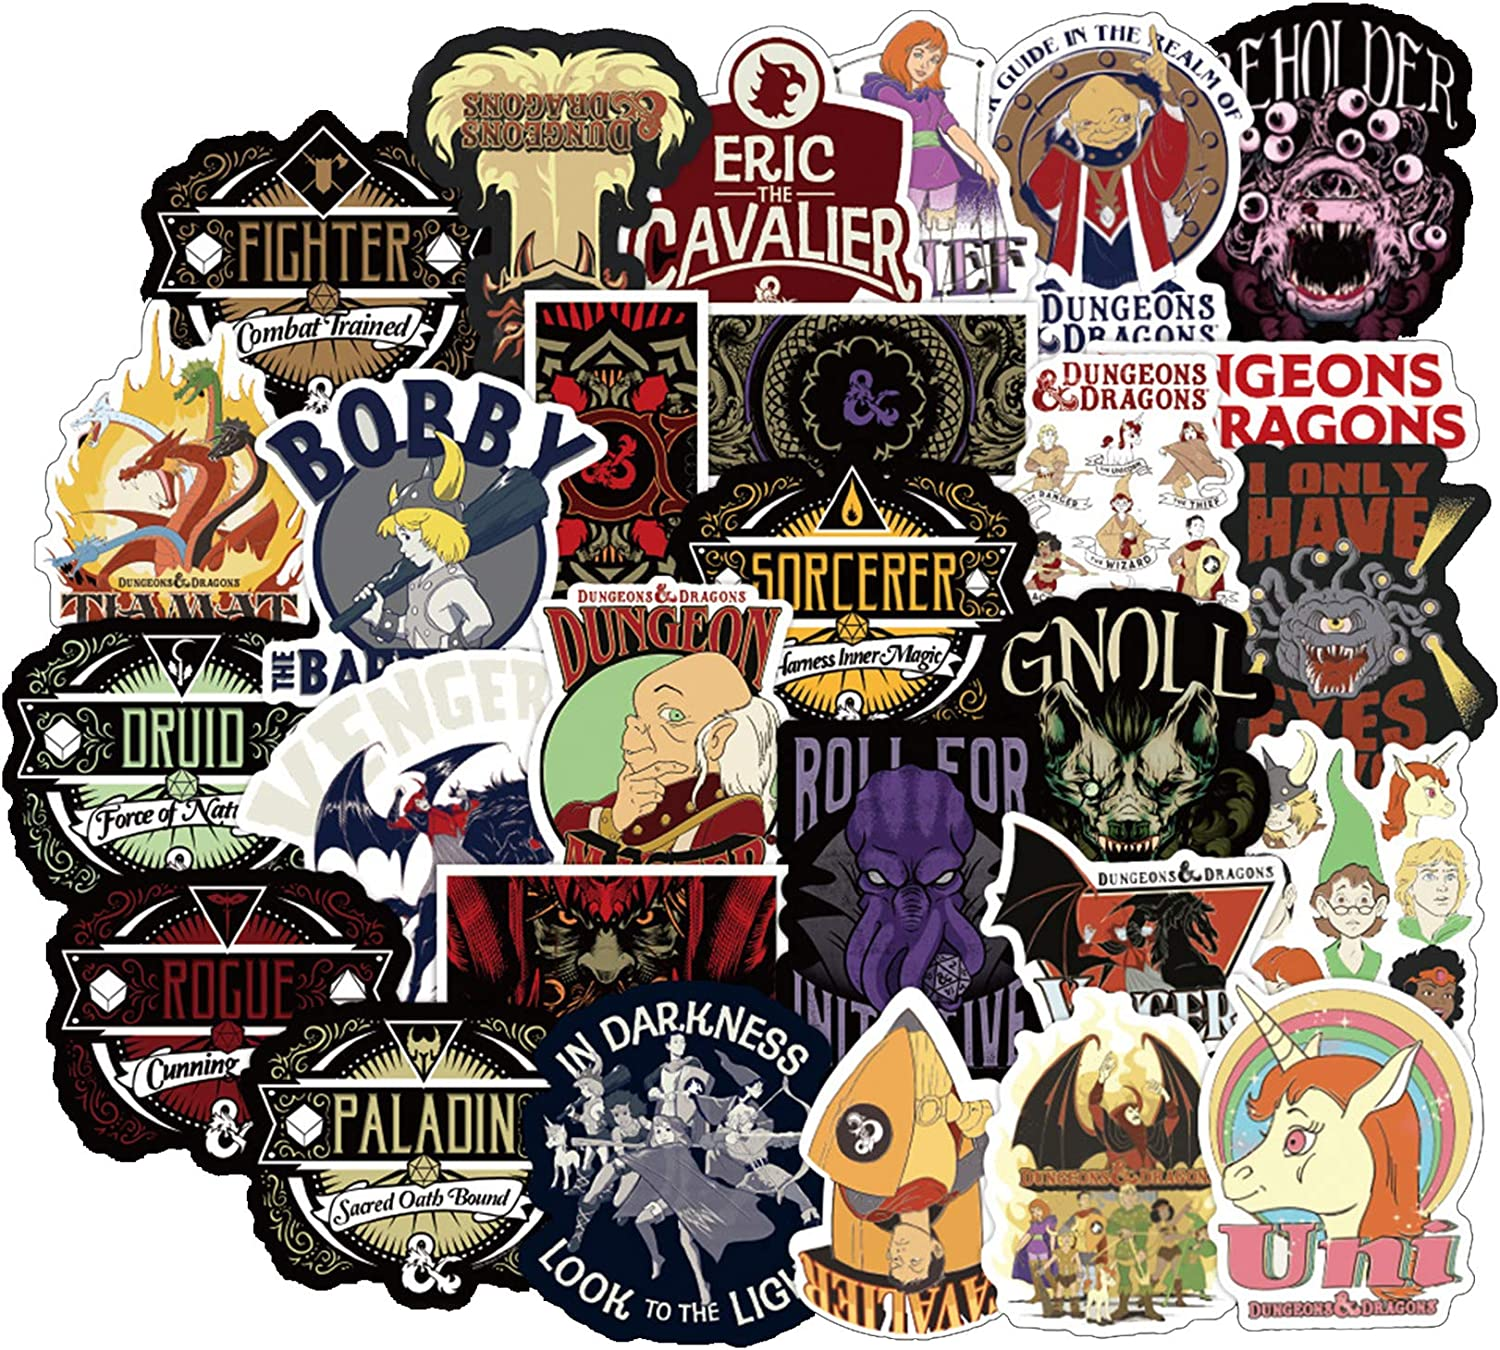 50Pcs Dungeons & Dragons Waterproof Stickers for Laptops Books Cars Motorcycles Skateboards Bicycles Suitcases Skis Luggage etc BJKT